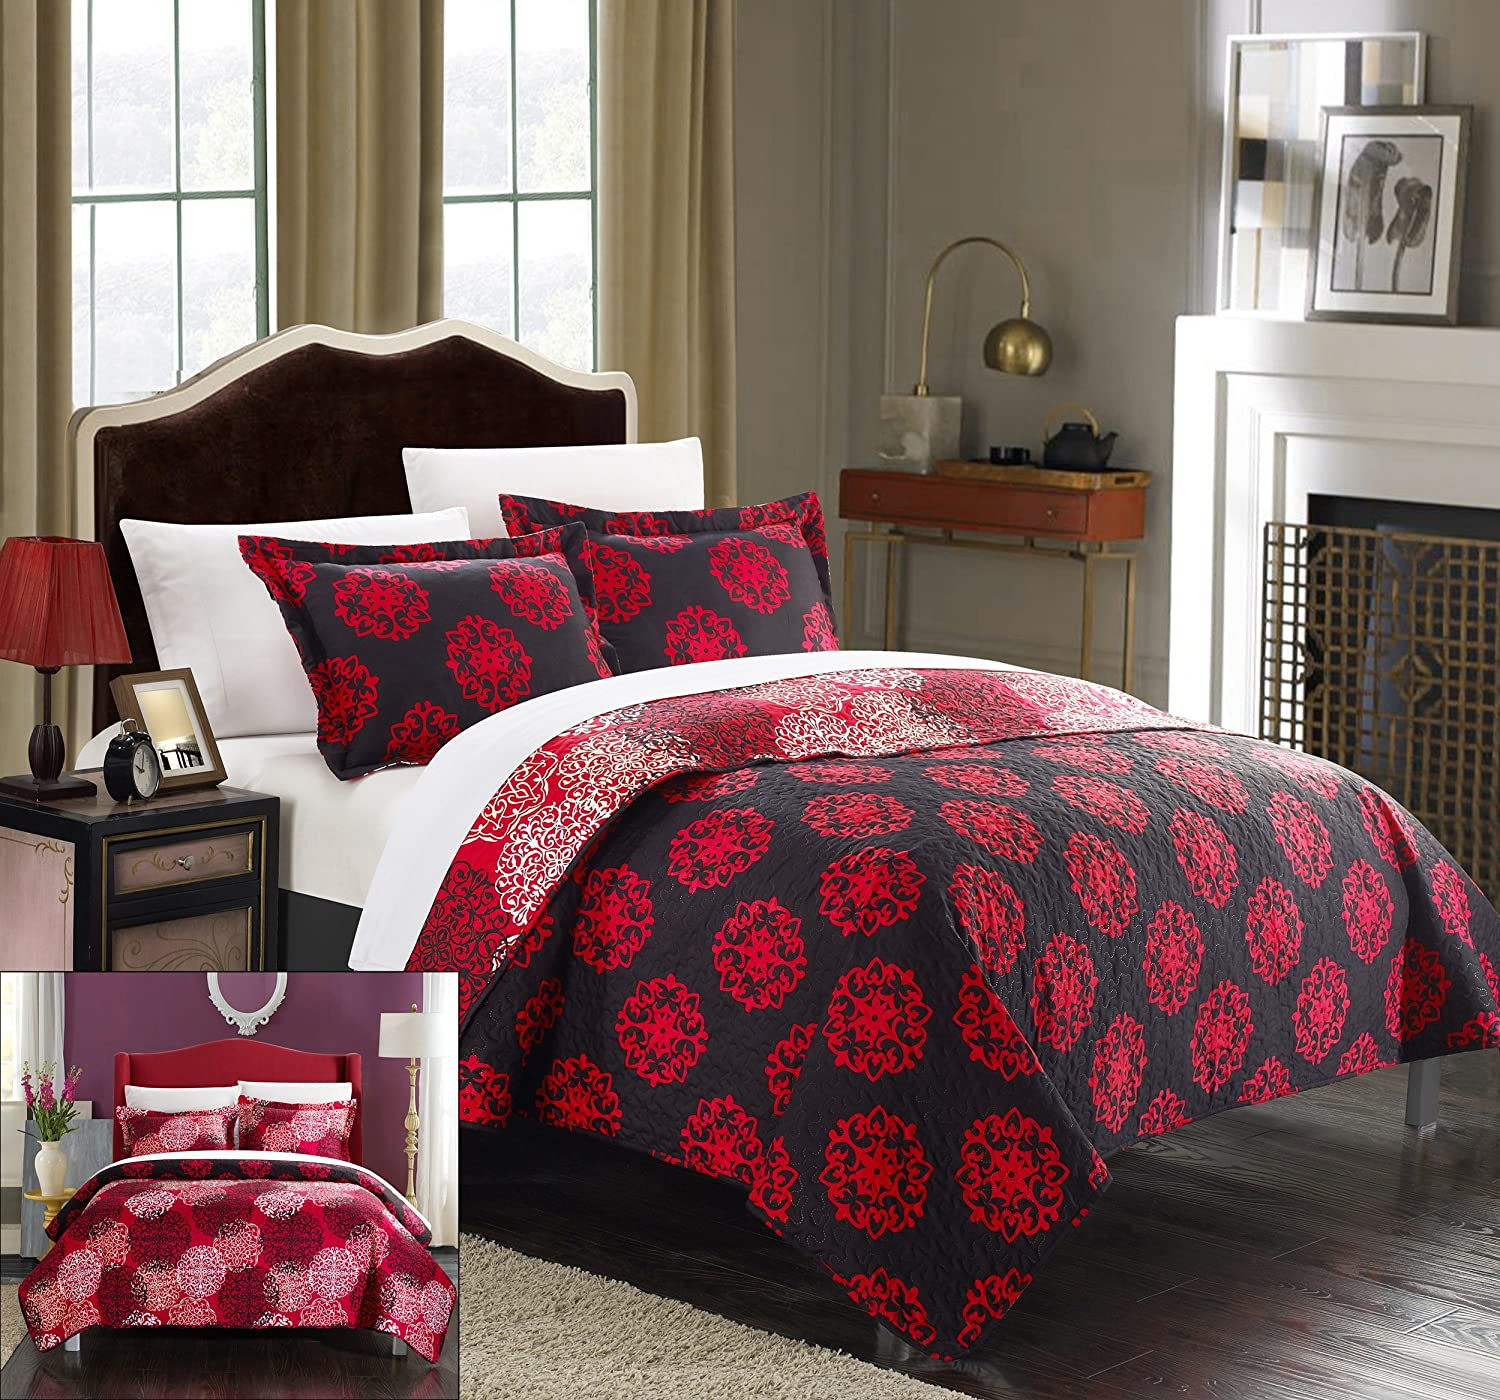 Chic Home 2 Piece Kelsie Boho Inspired Reversible Print Quilt Set, Twin, Red